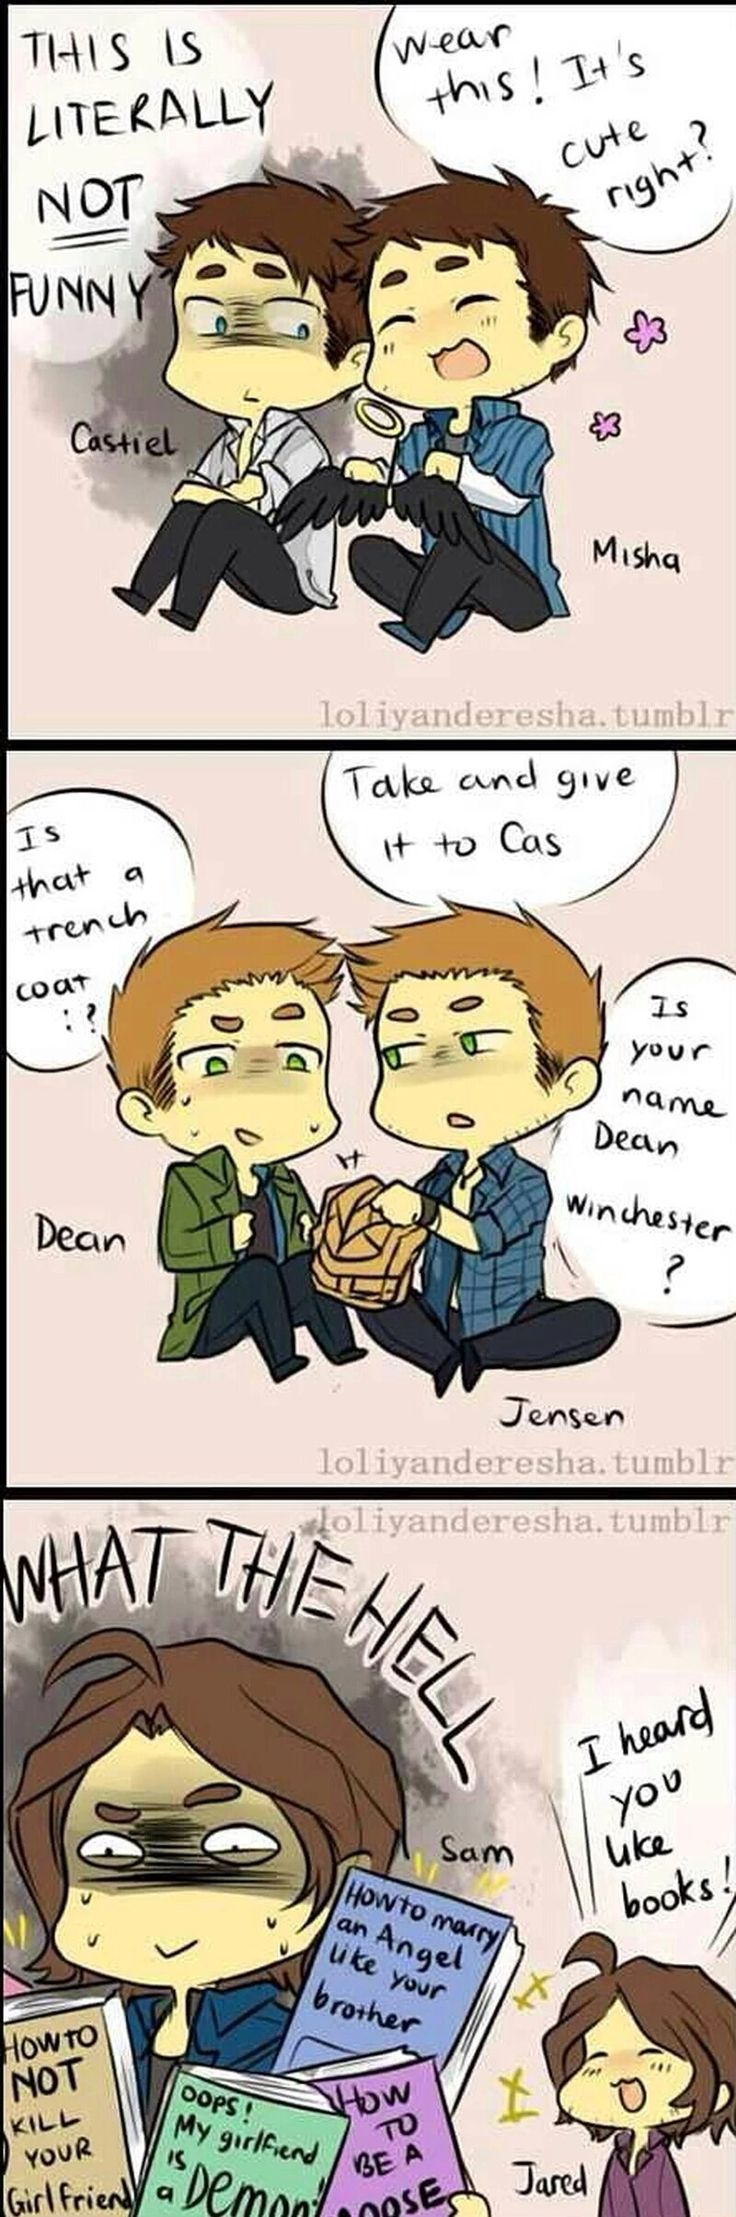 Love how Jared's face looks when he gives the books to Sam.